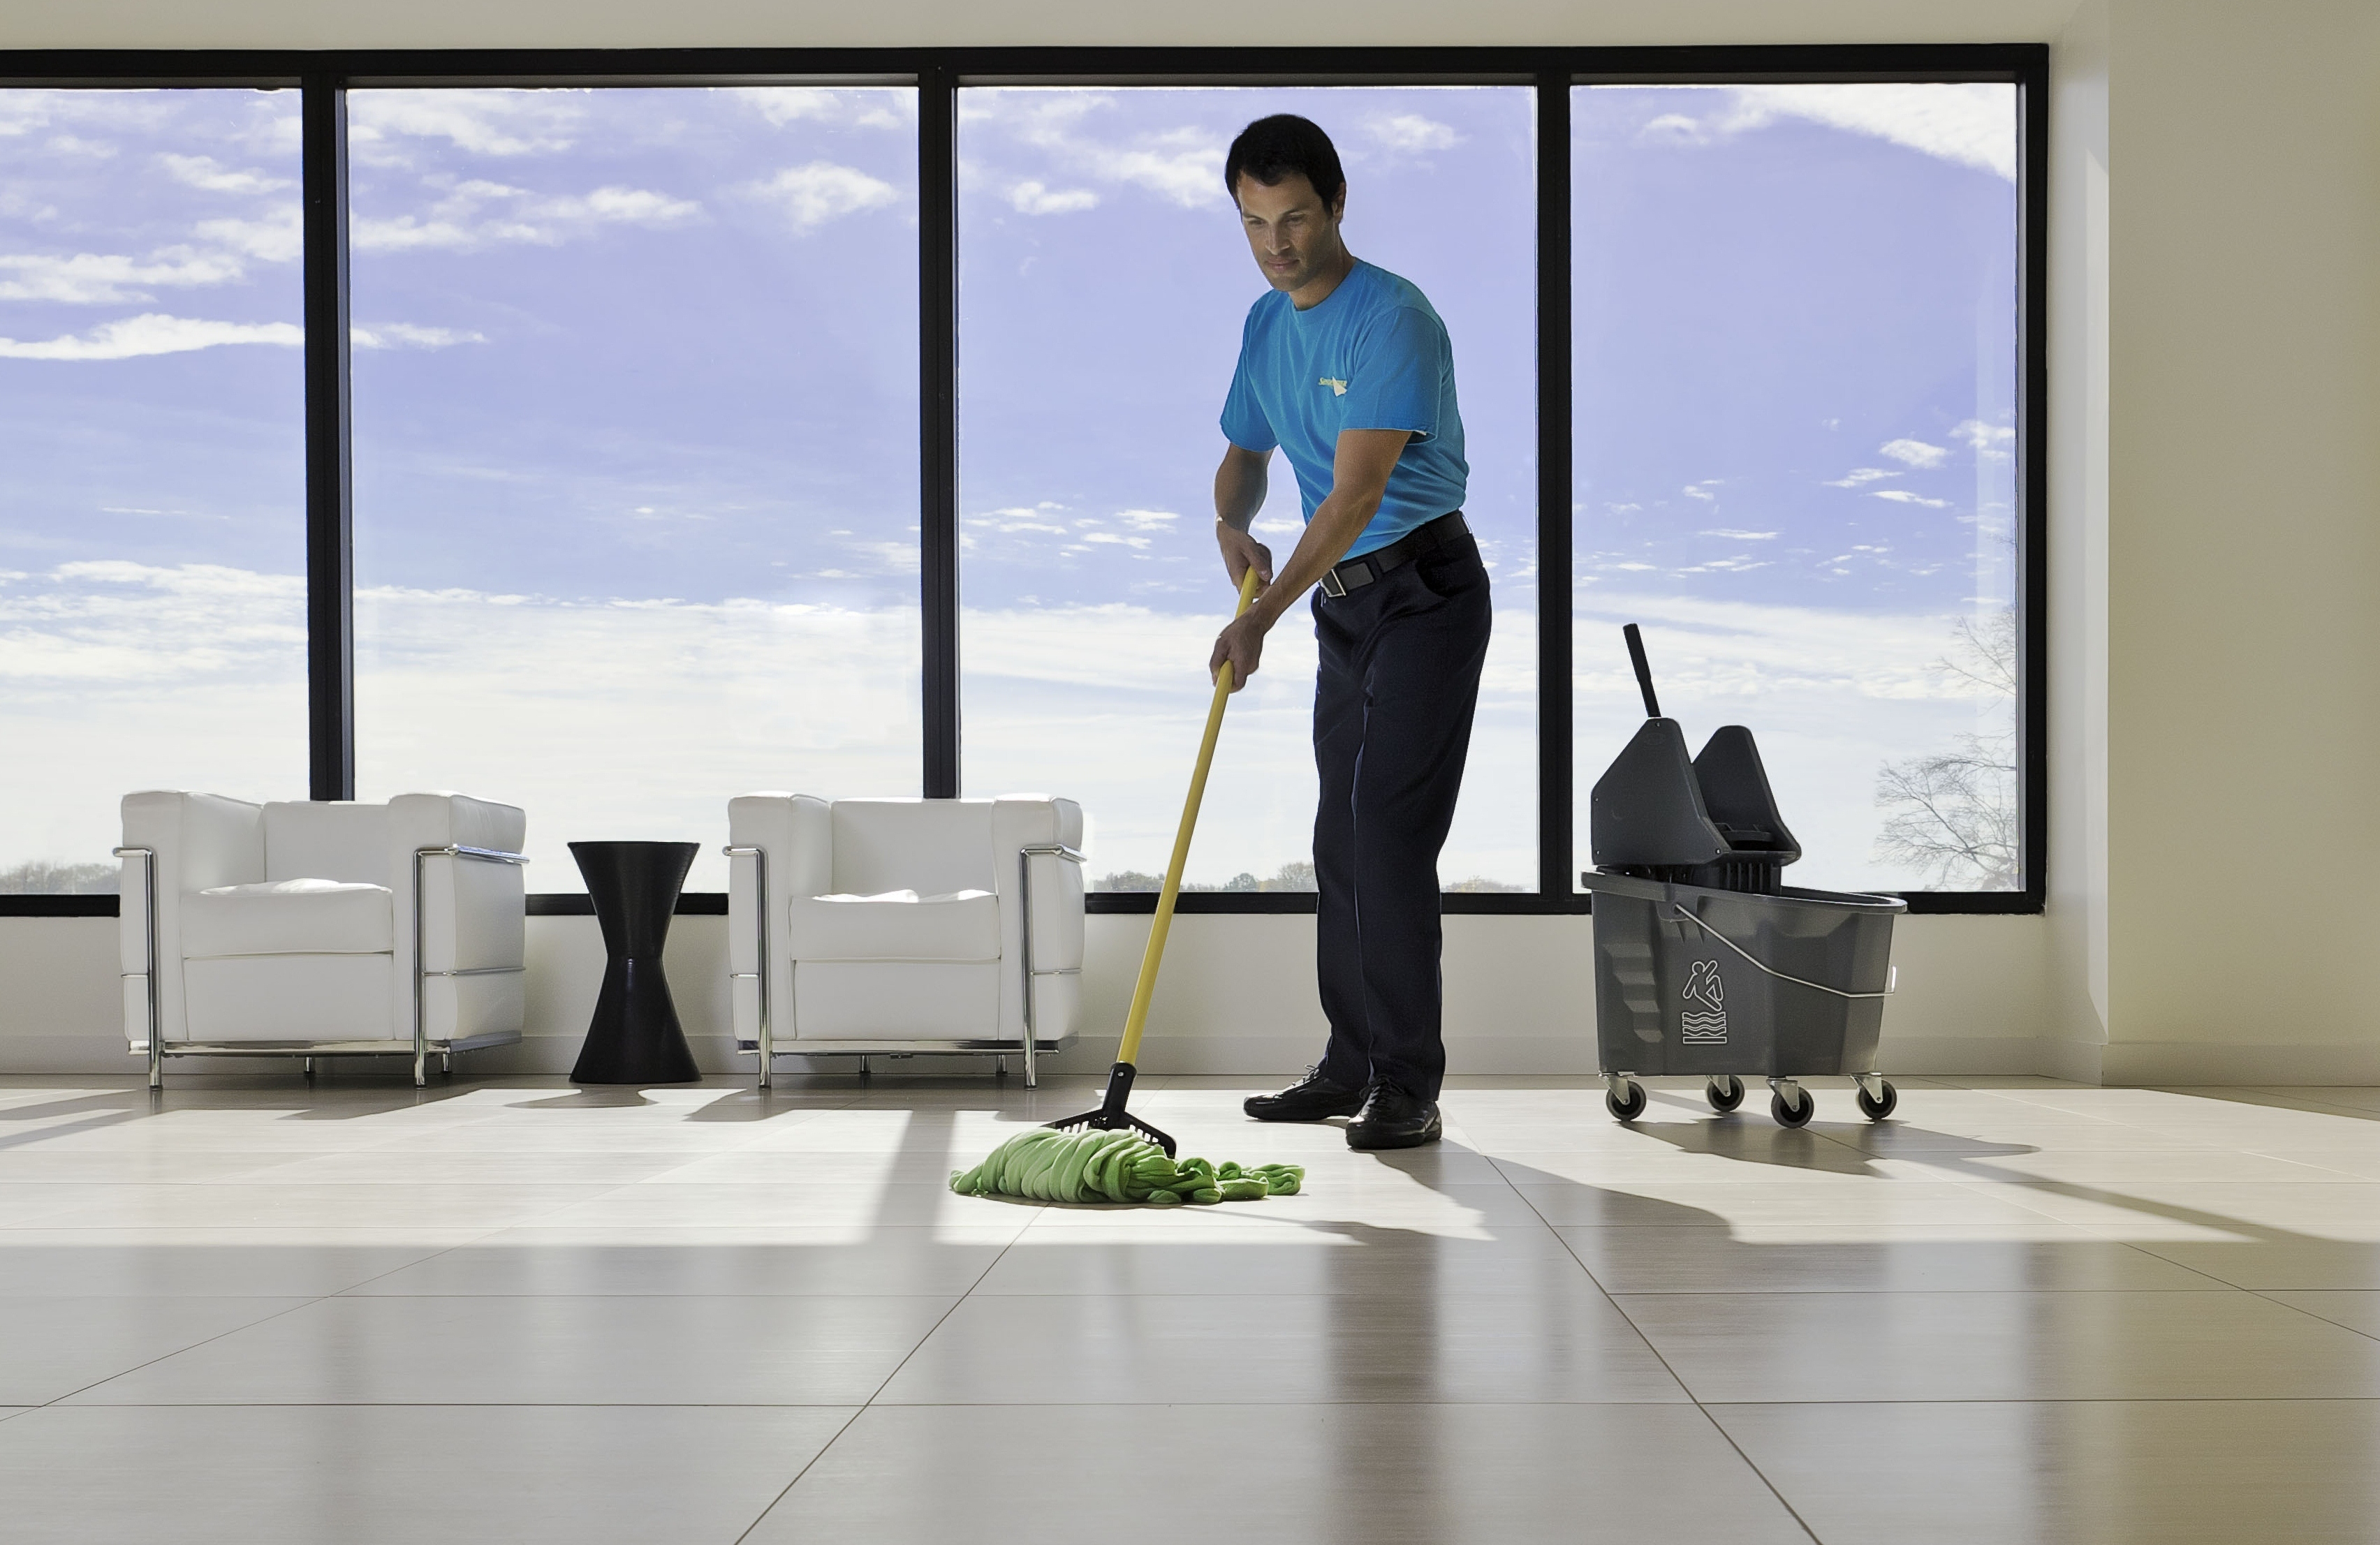 Awesome Professional Apartment Cleaning Images - Home Design Ideas ...